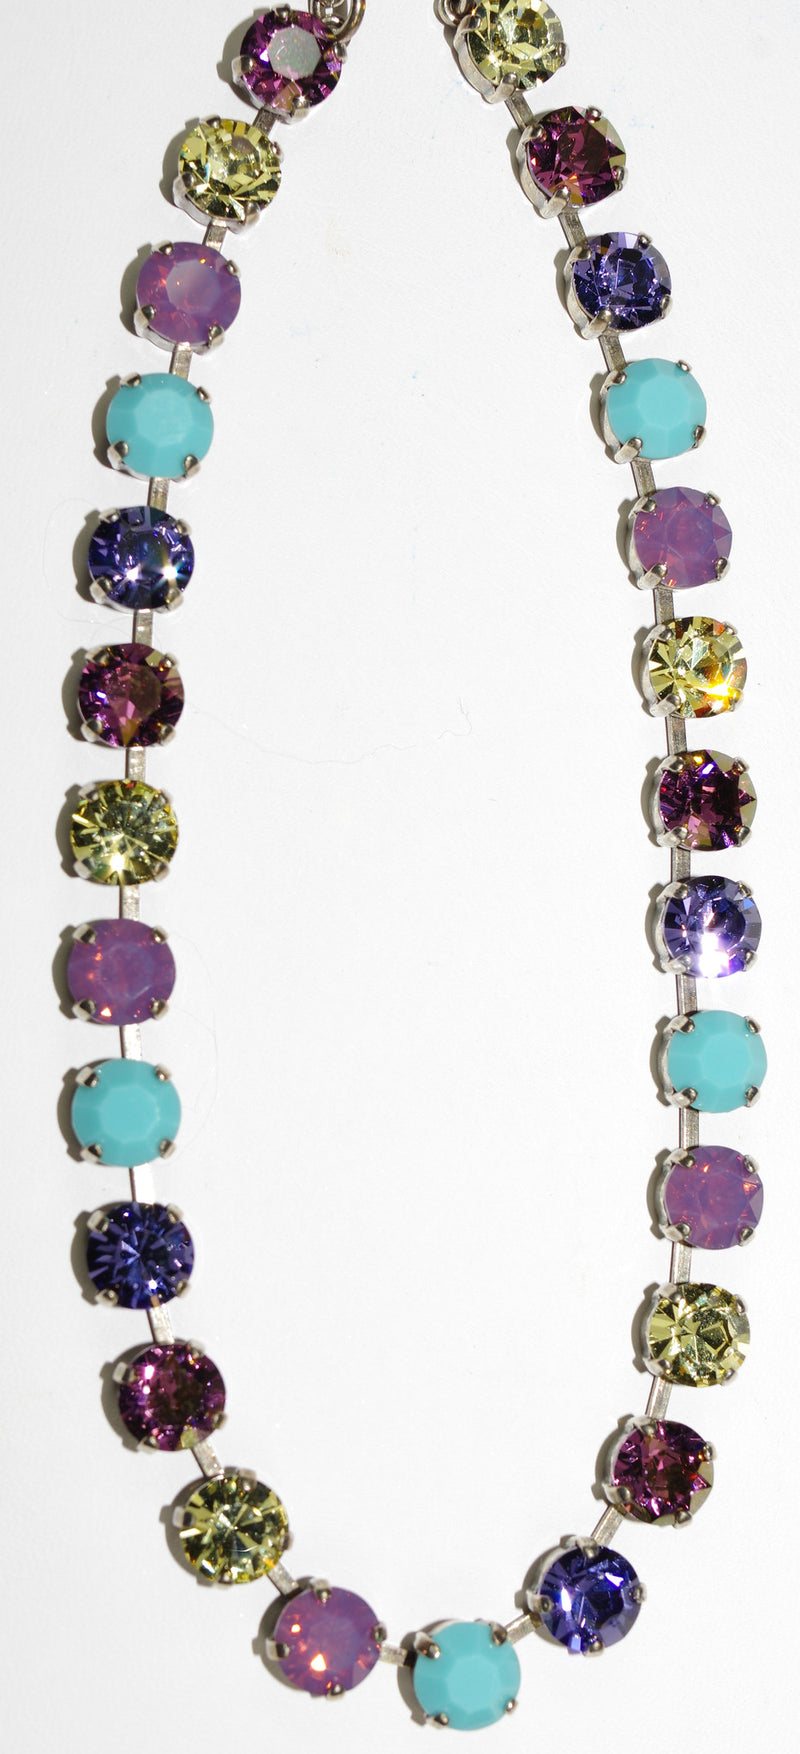 "MARIANA NECKLACE HAPPINESS BETTE: purple, turq, yellow, lavender stones in silver setting, 17"" adjustable chain"